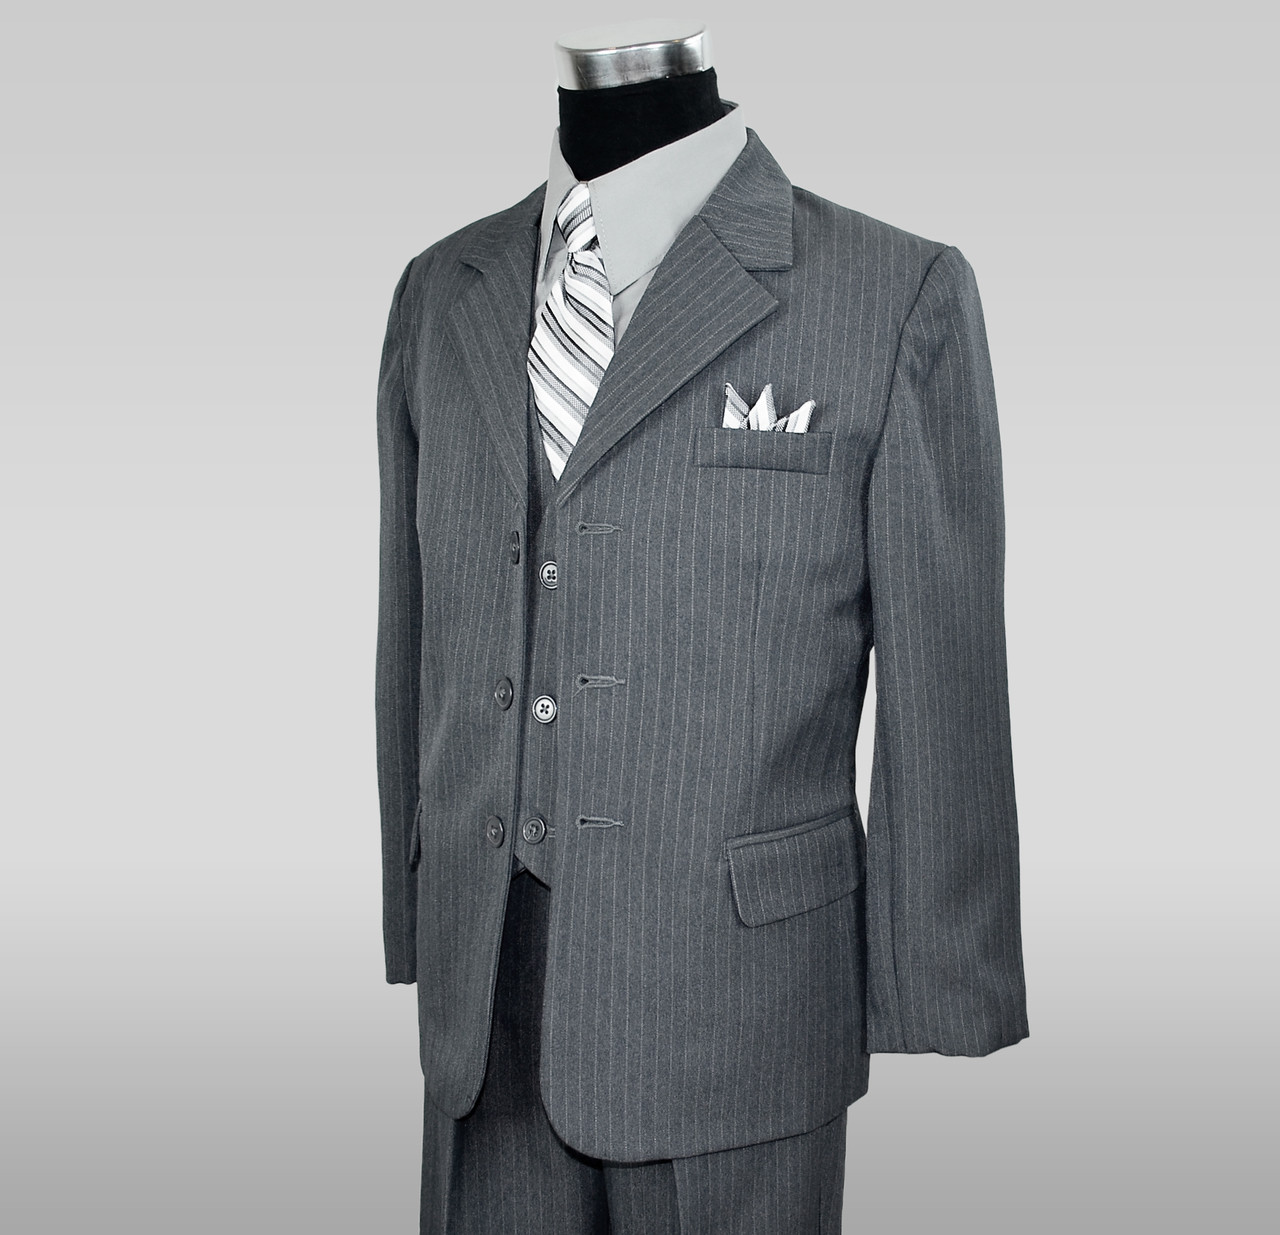 Boys Grey Pinstripe Suit 5 Pieces Set with Vest and Tie Size 2T-14 Two Button